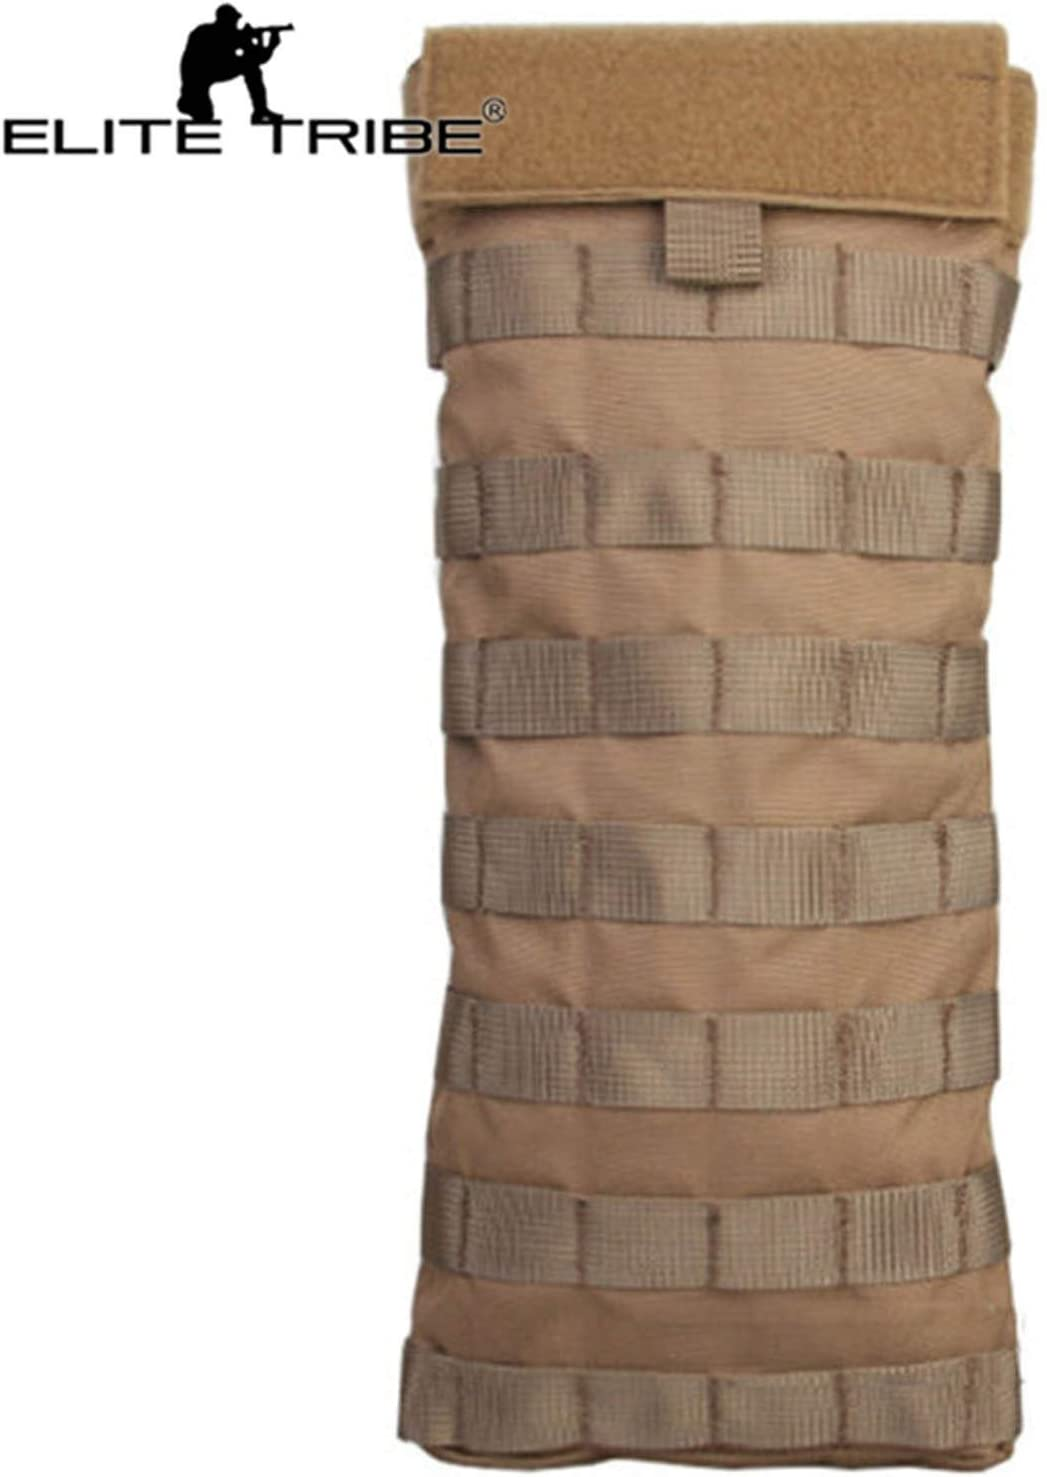 Elite Tribe Airsoft Chasse deau Sac Lbt6119/a Style Molle hydratation Pouch 2L Coyote Marron